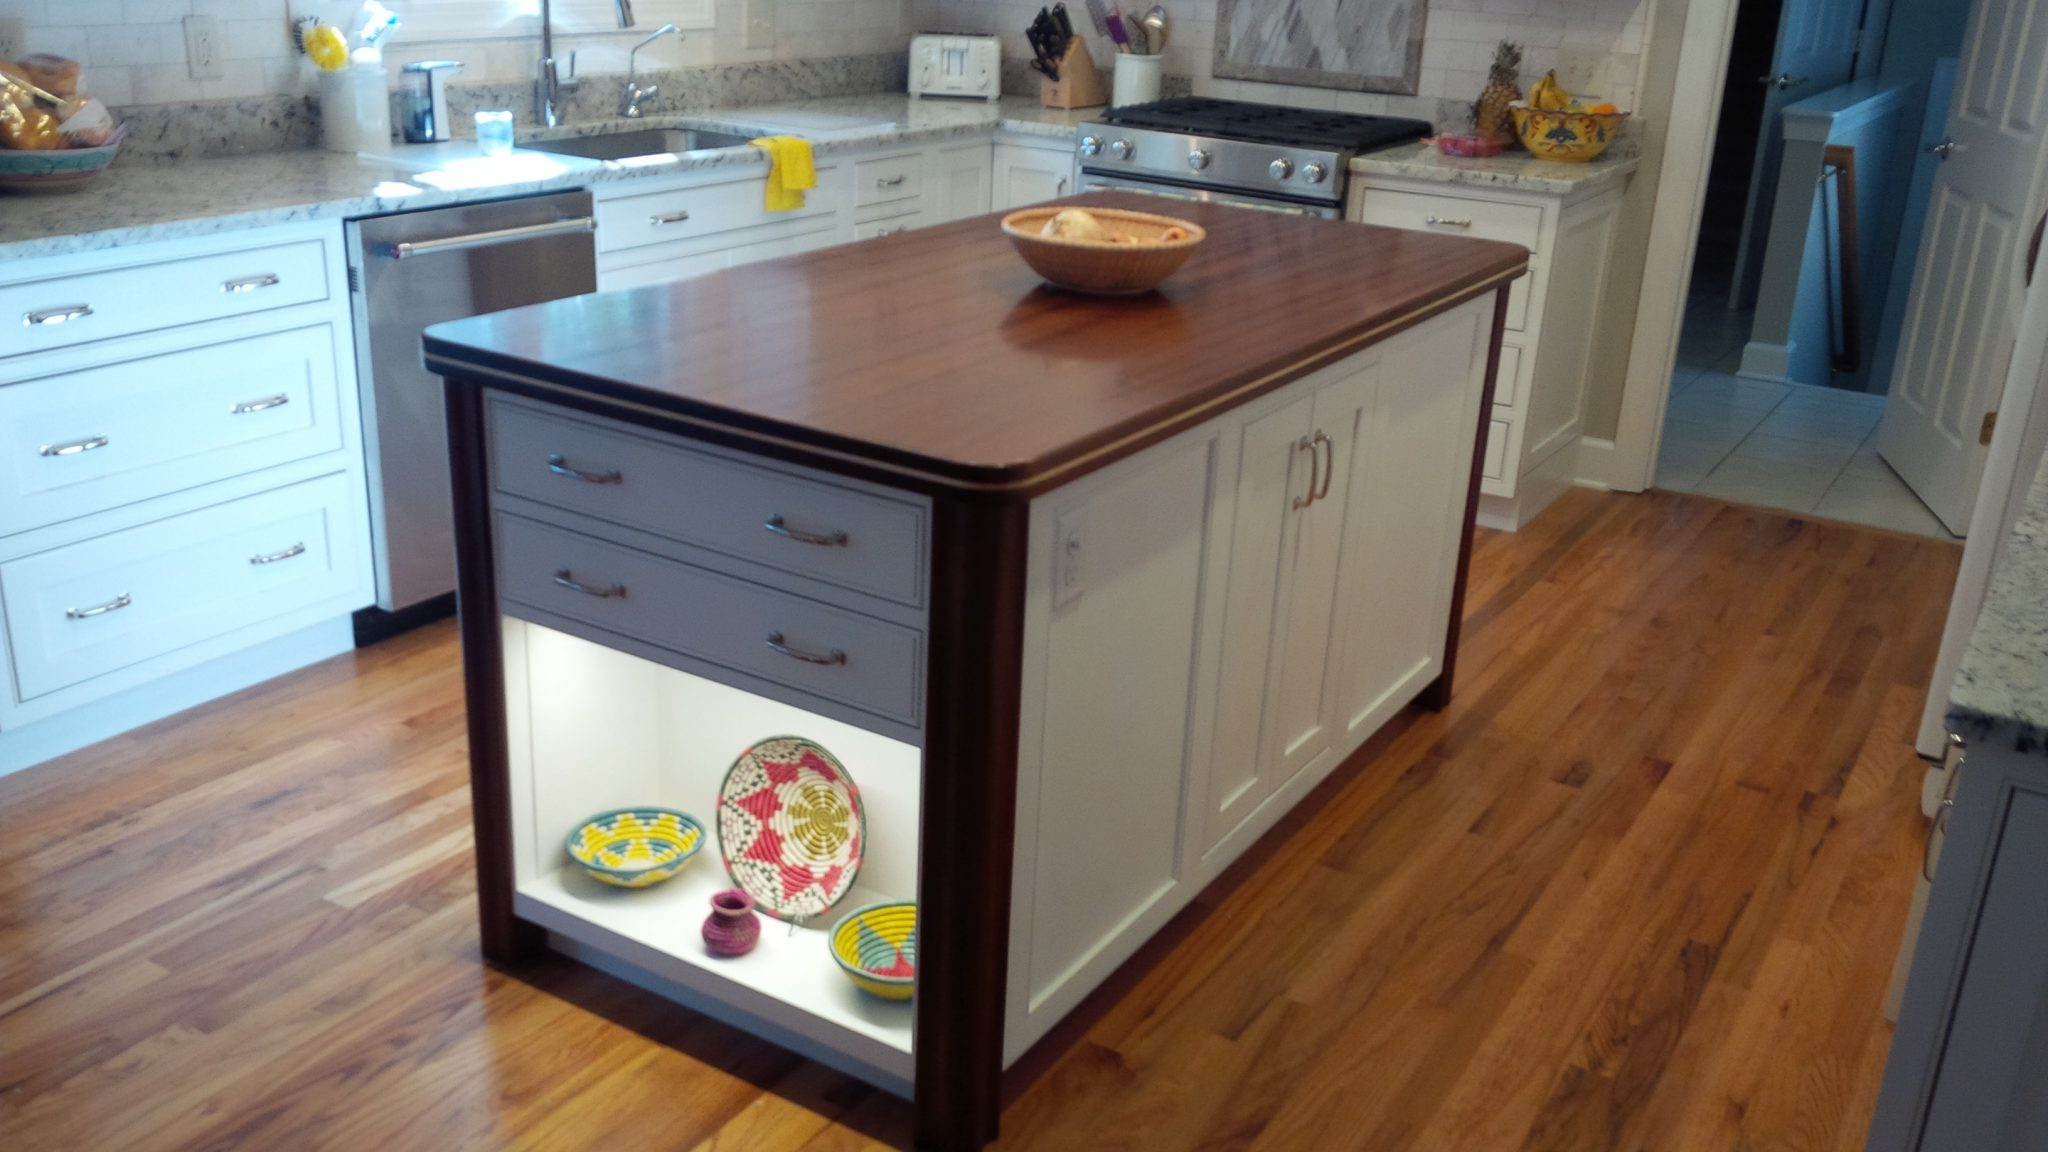 Kitchen Island (7' x 3') is constructed of a Sapele Top, Mahogany Legs and Plywood and Cherry Cabinetry